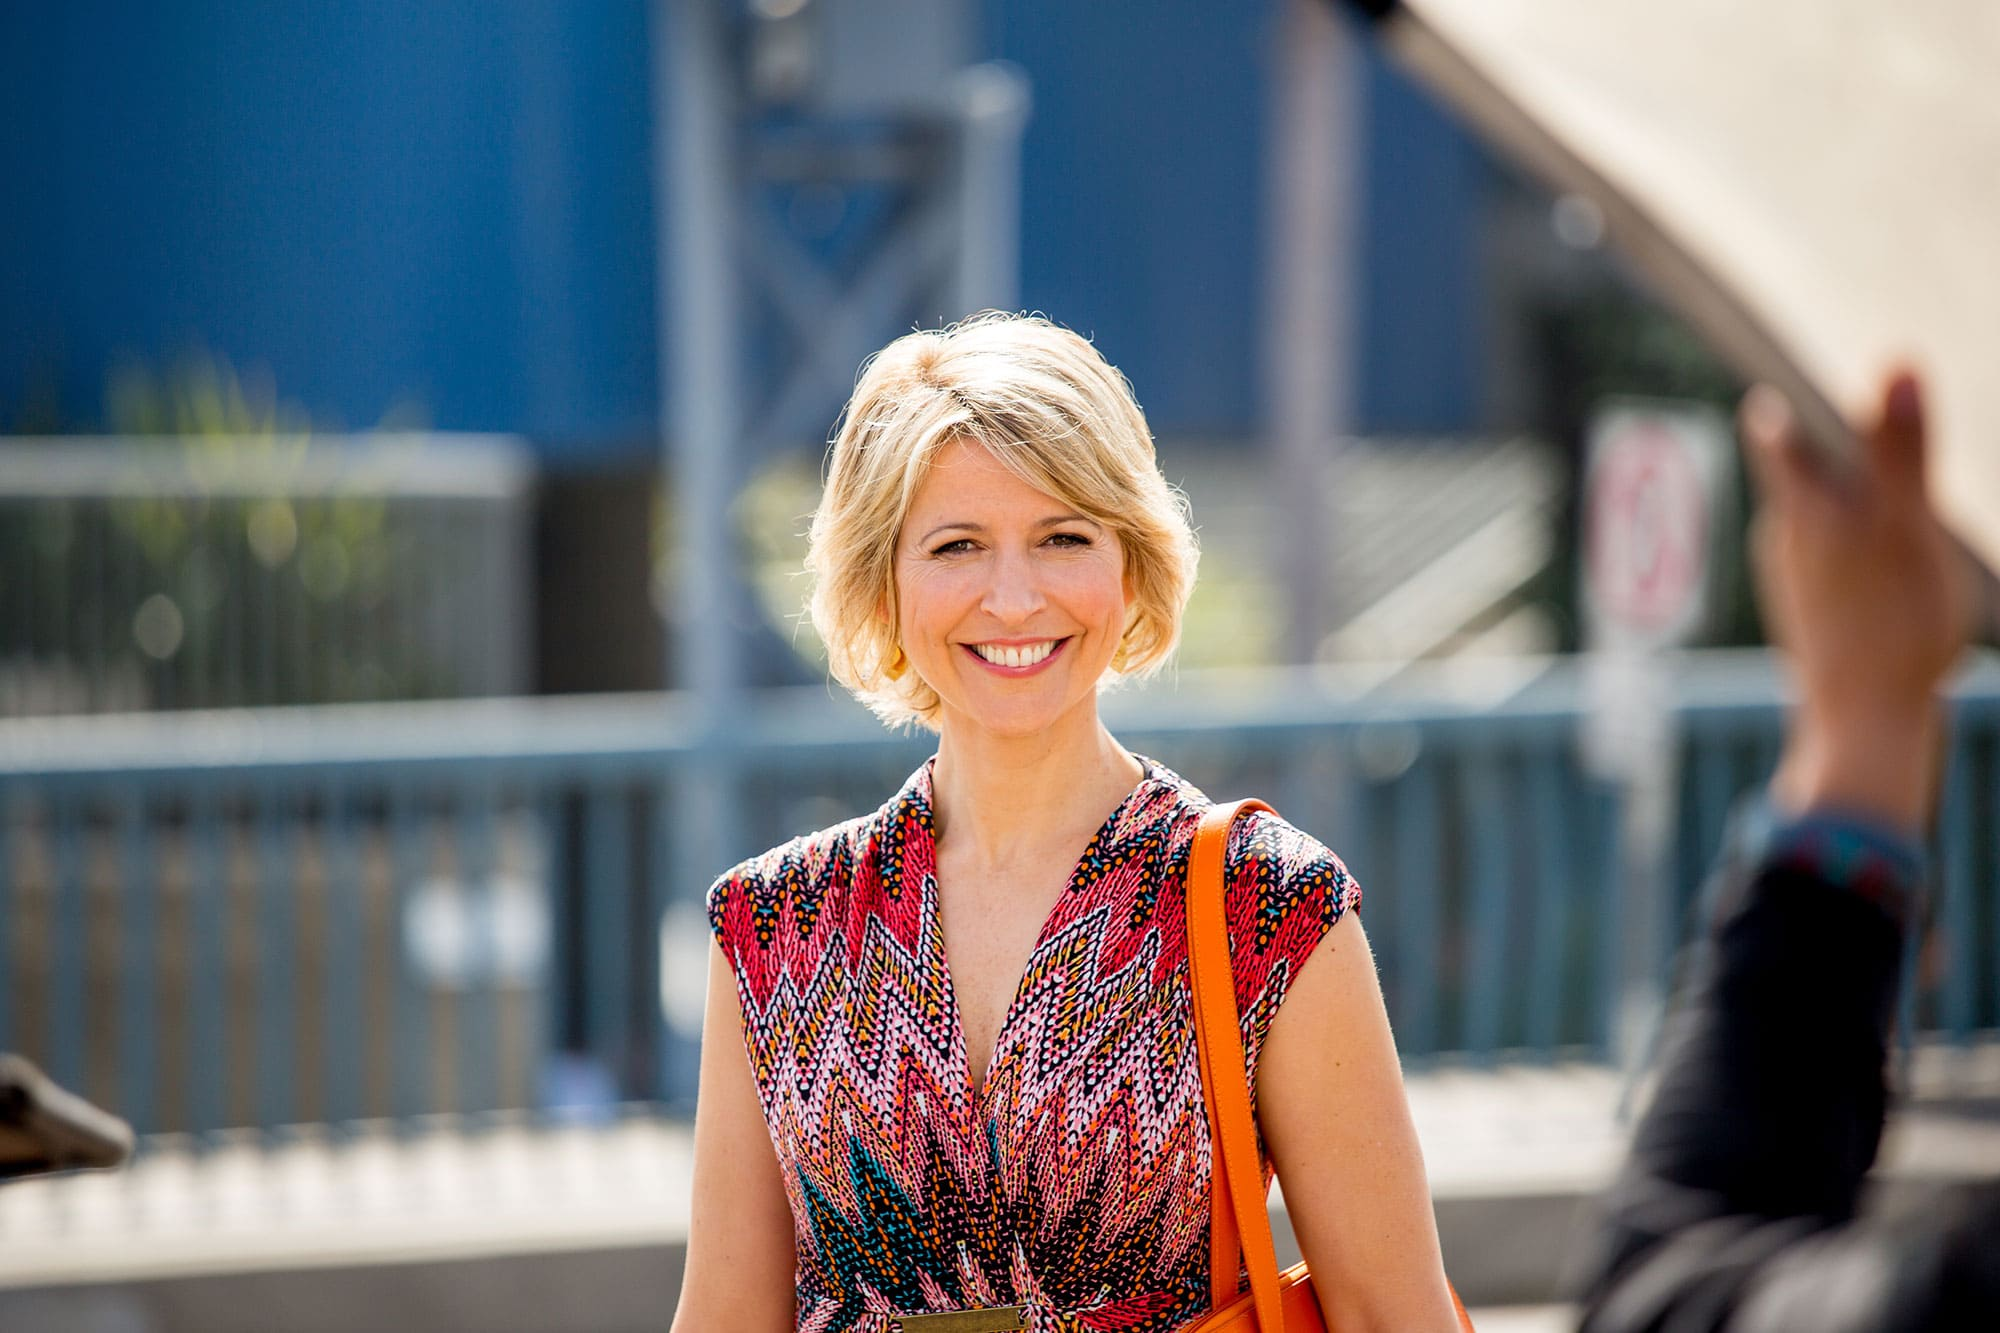 Big News: Samantha Brown's Places To Love Is Coming To PBS!